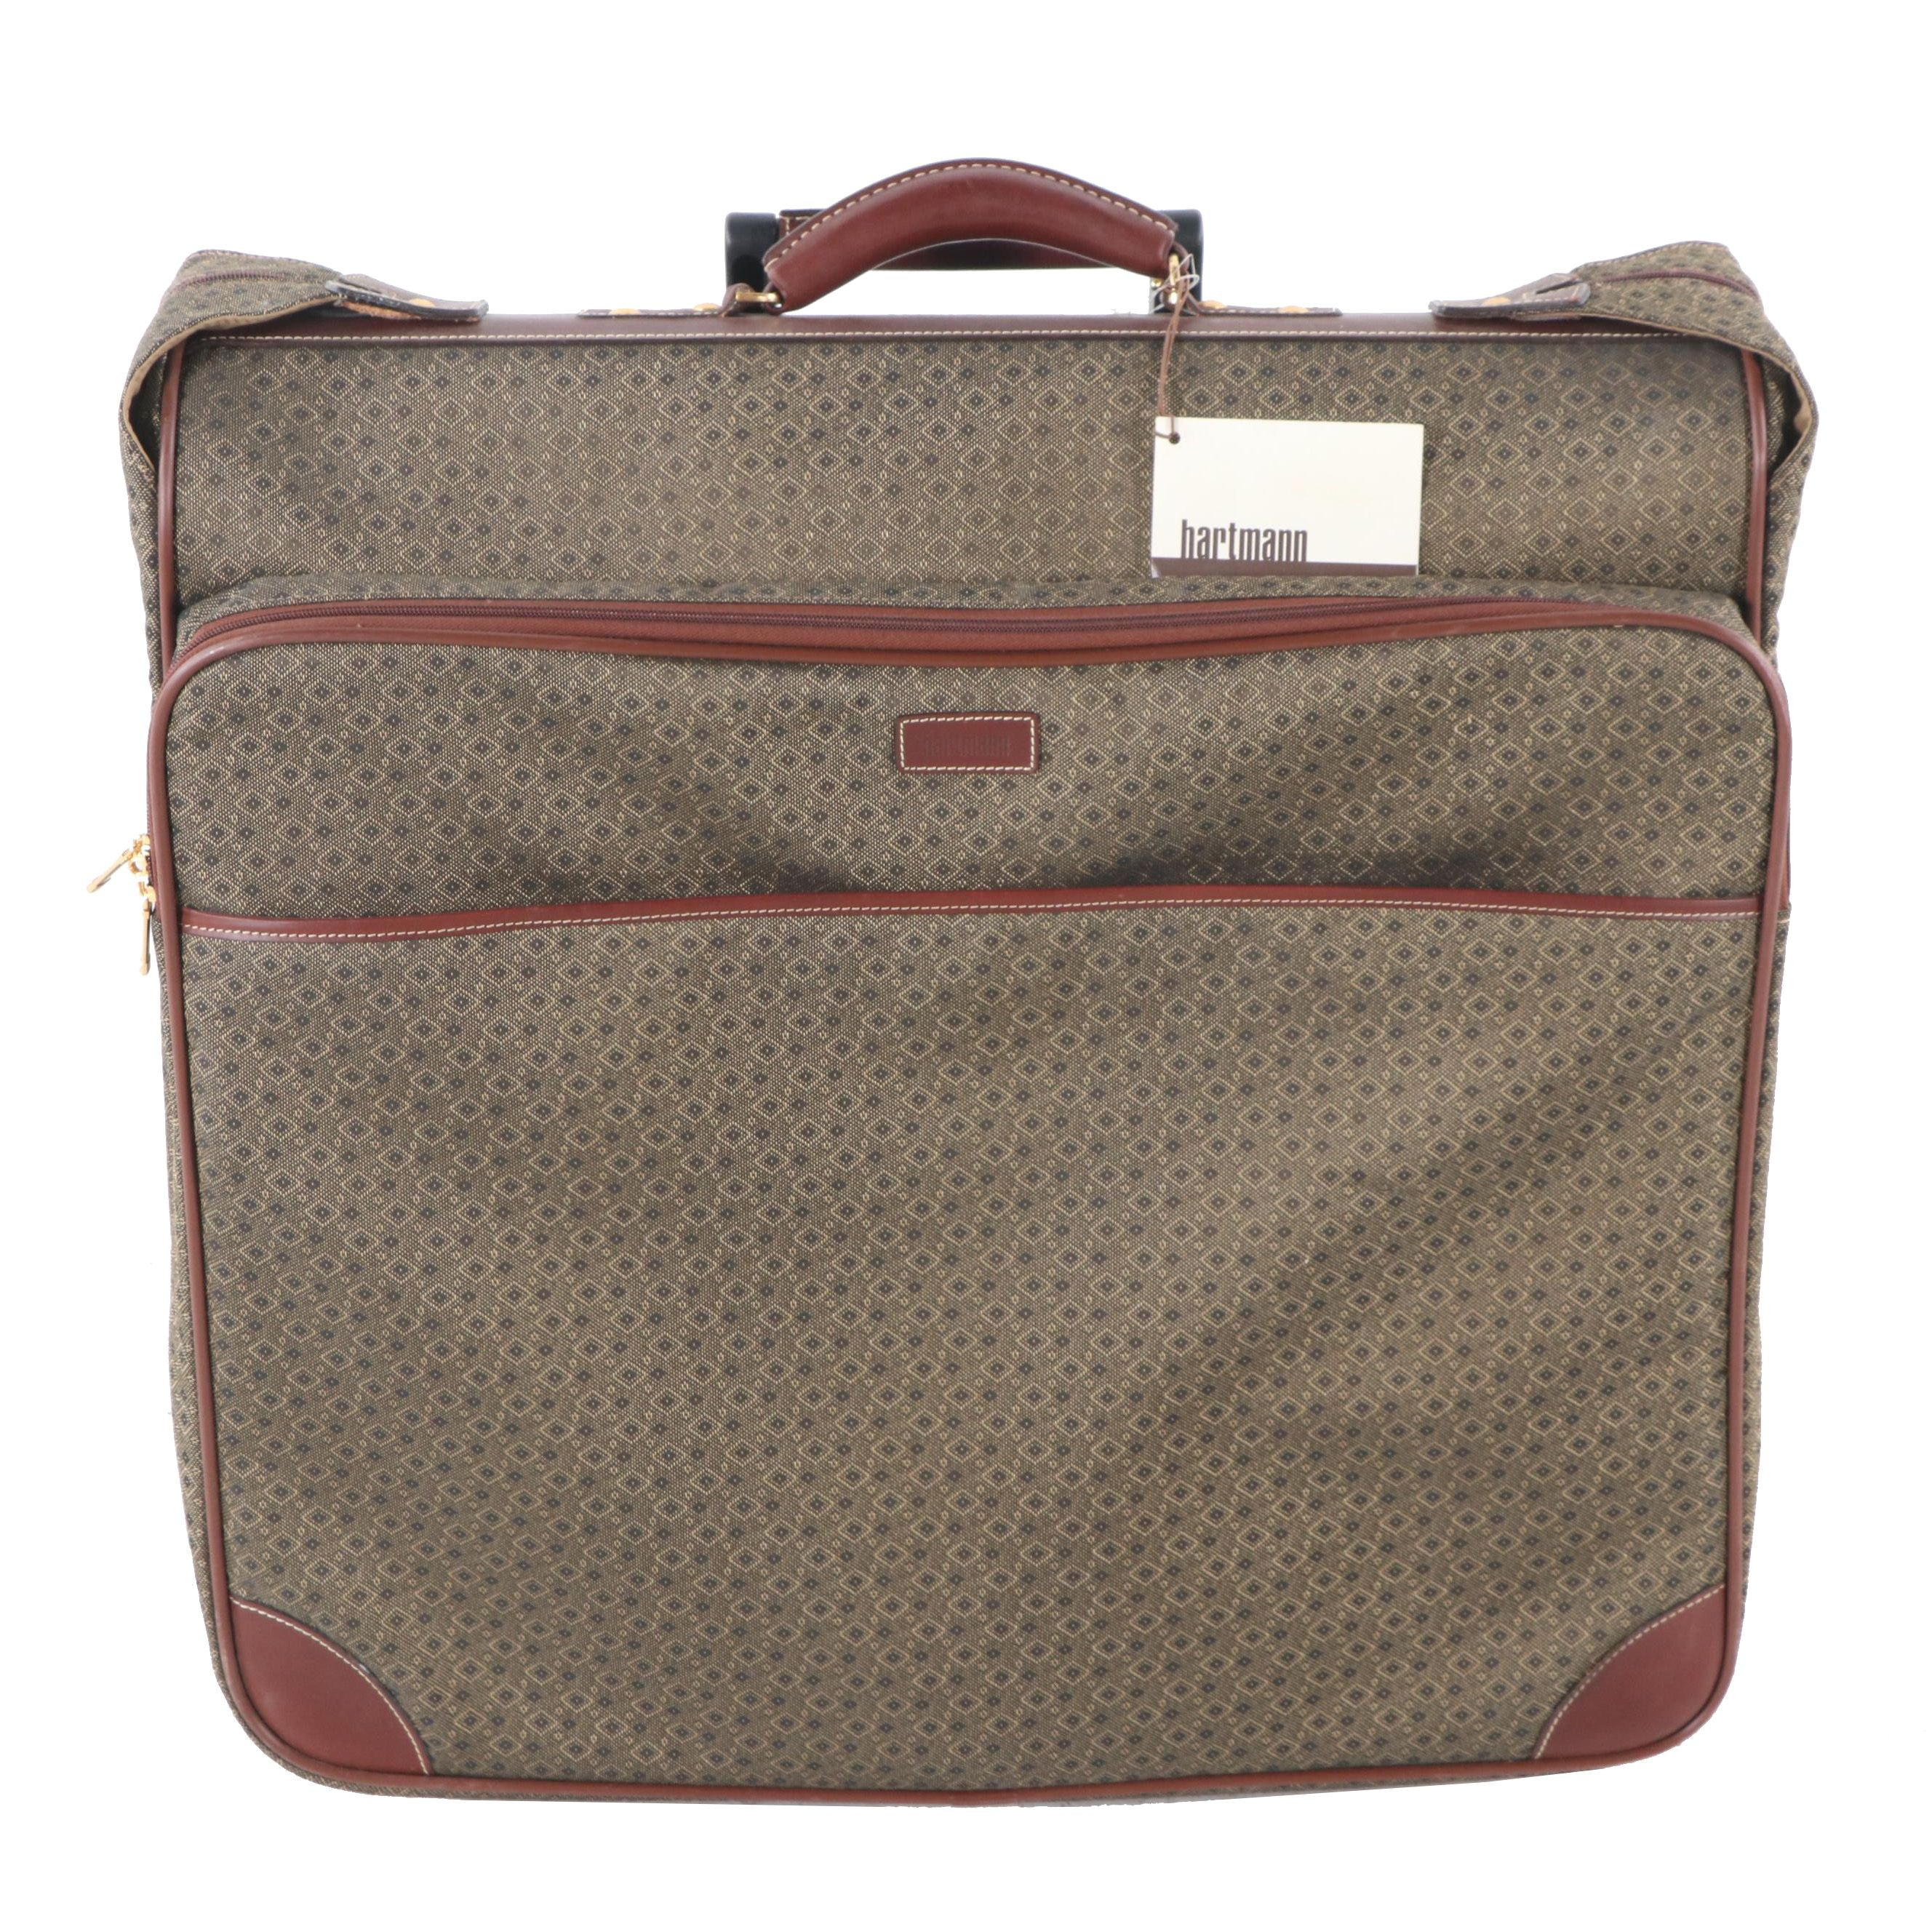 Hartmann Wings Collection Canvas and Leather Suitcase